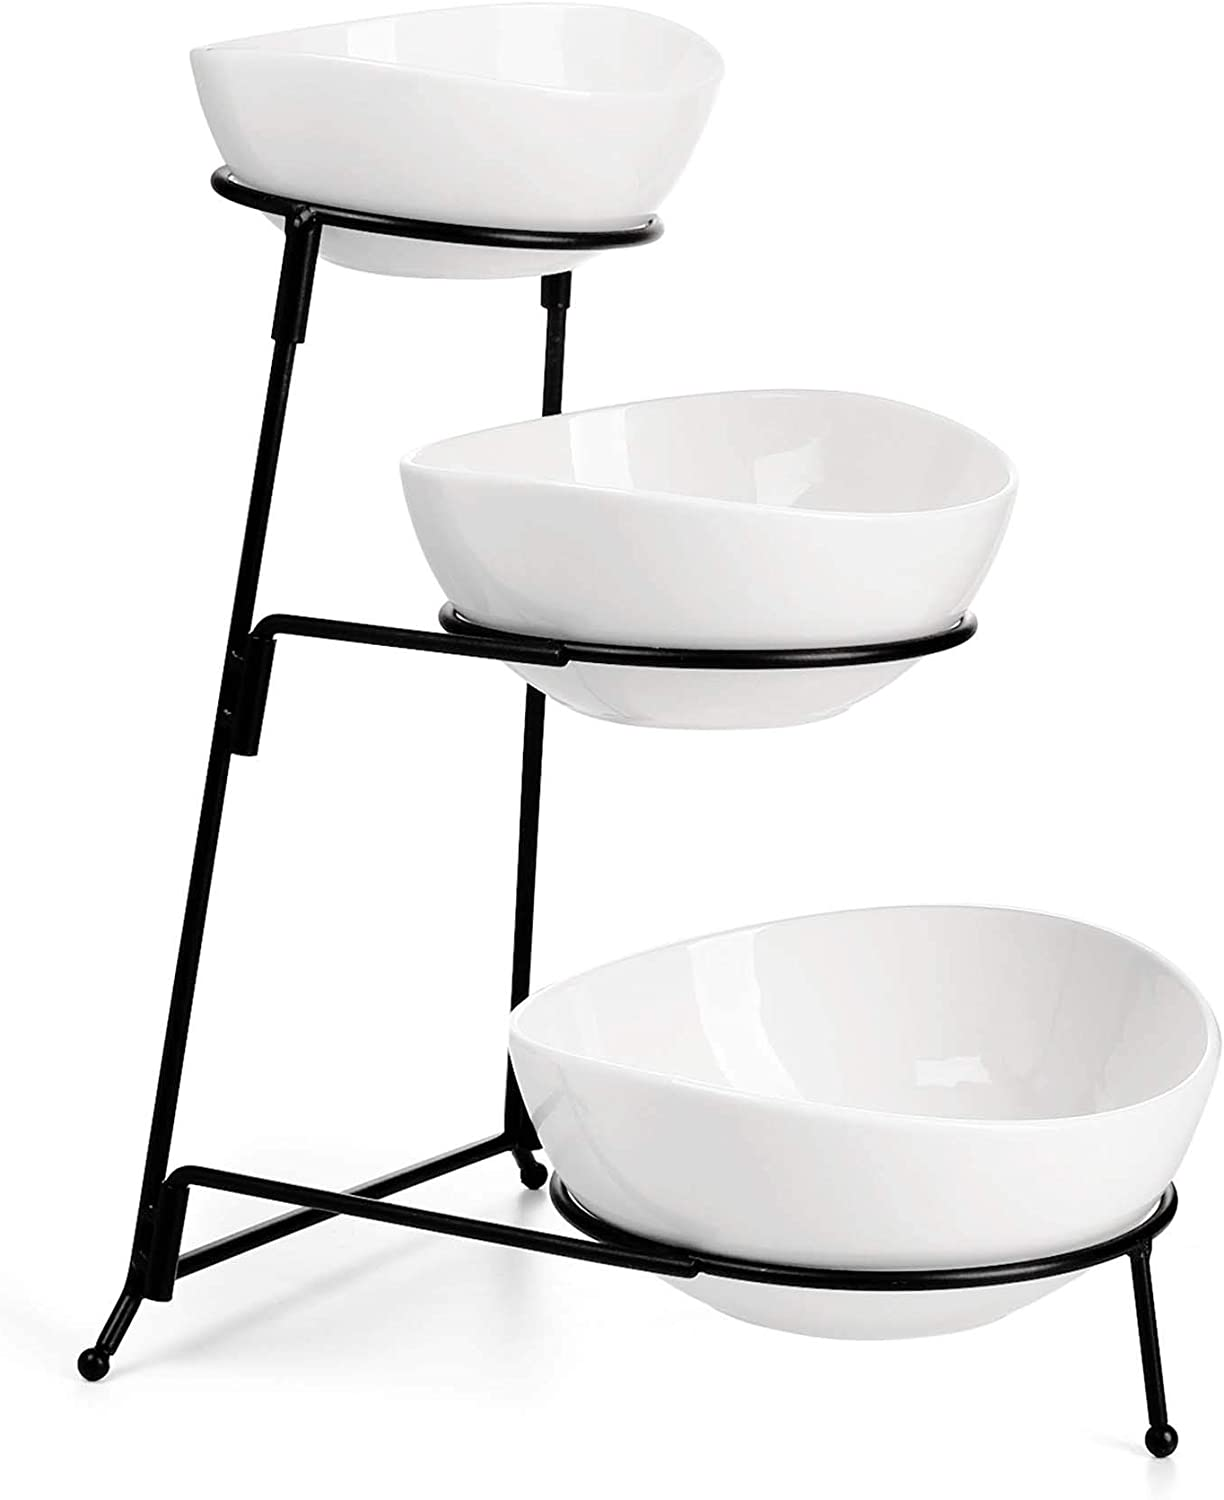 Sweese 736.101 3 Tier Oval Bowl Set with Sturdier Metal Rack, Tiered Serving Stand, Chip and Dip Serving Set -Serving Bowls for Parties